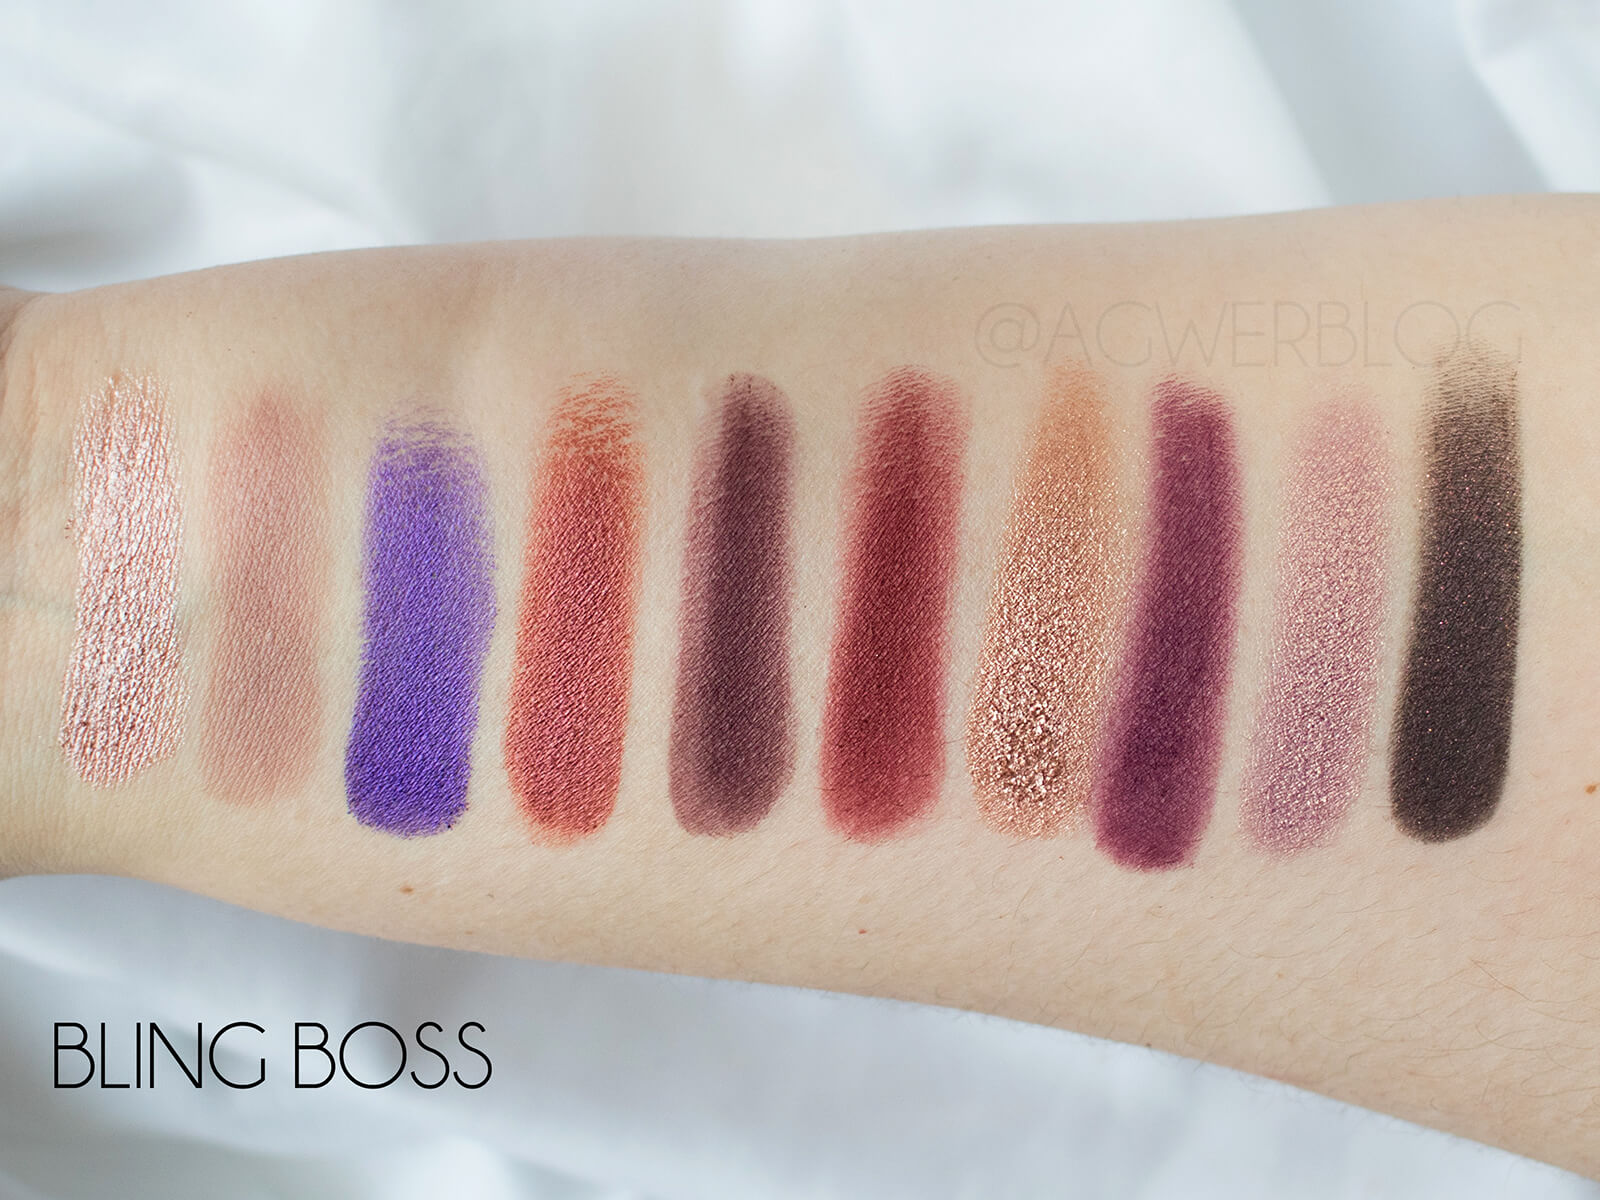 bling boss swatches